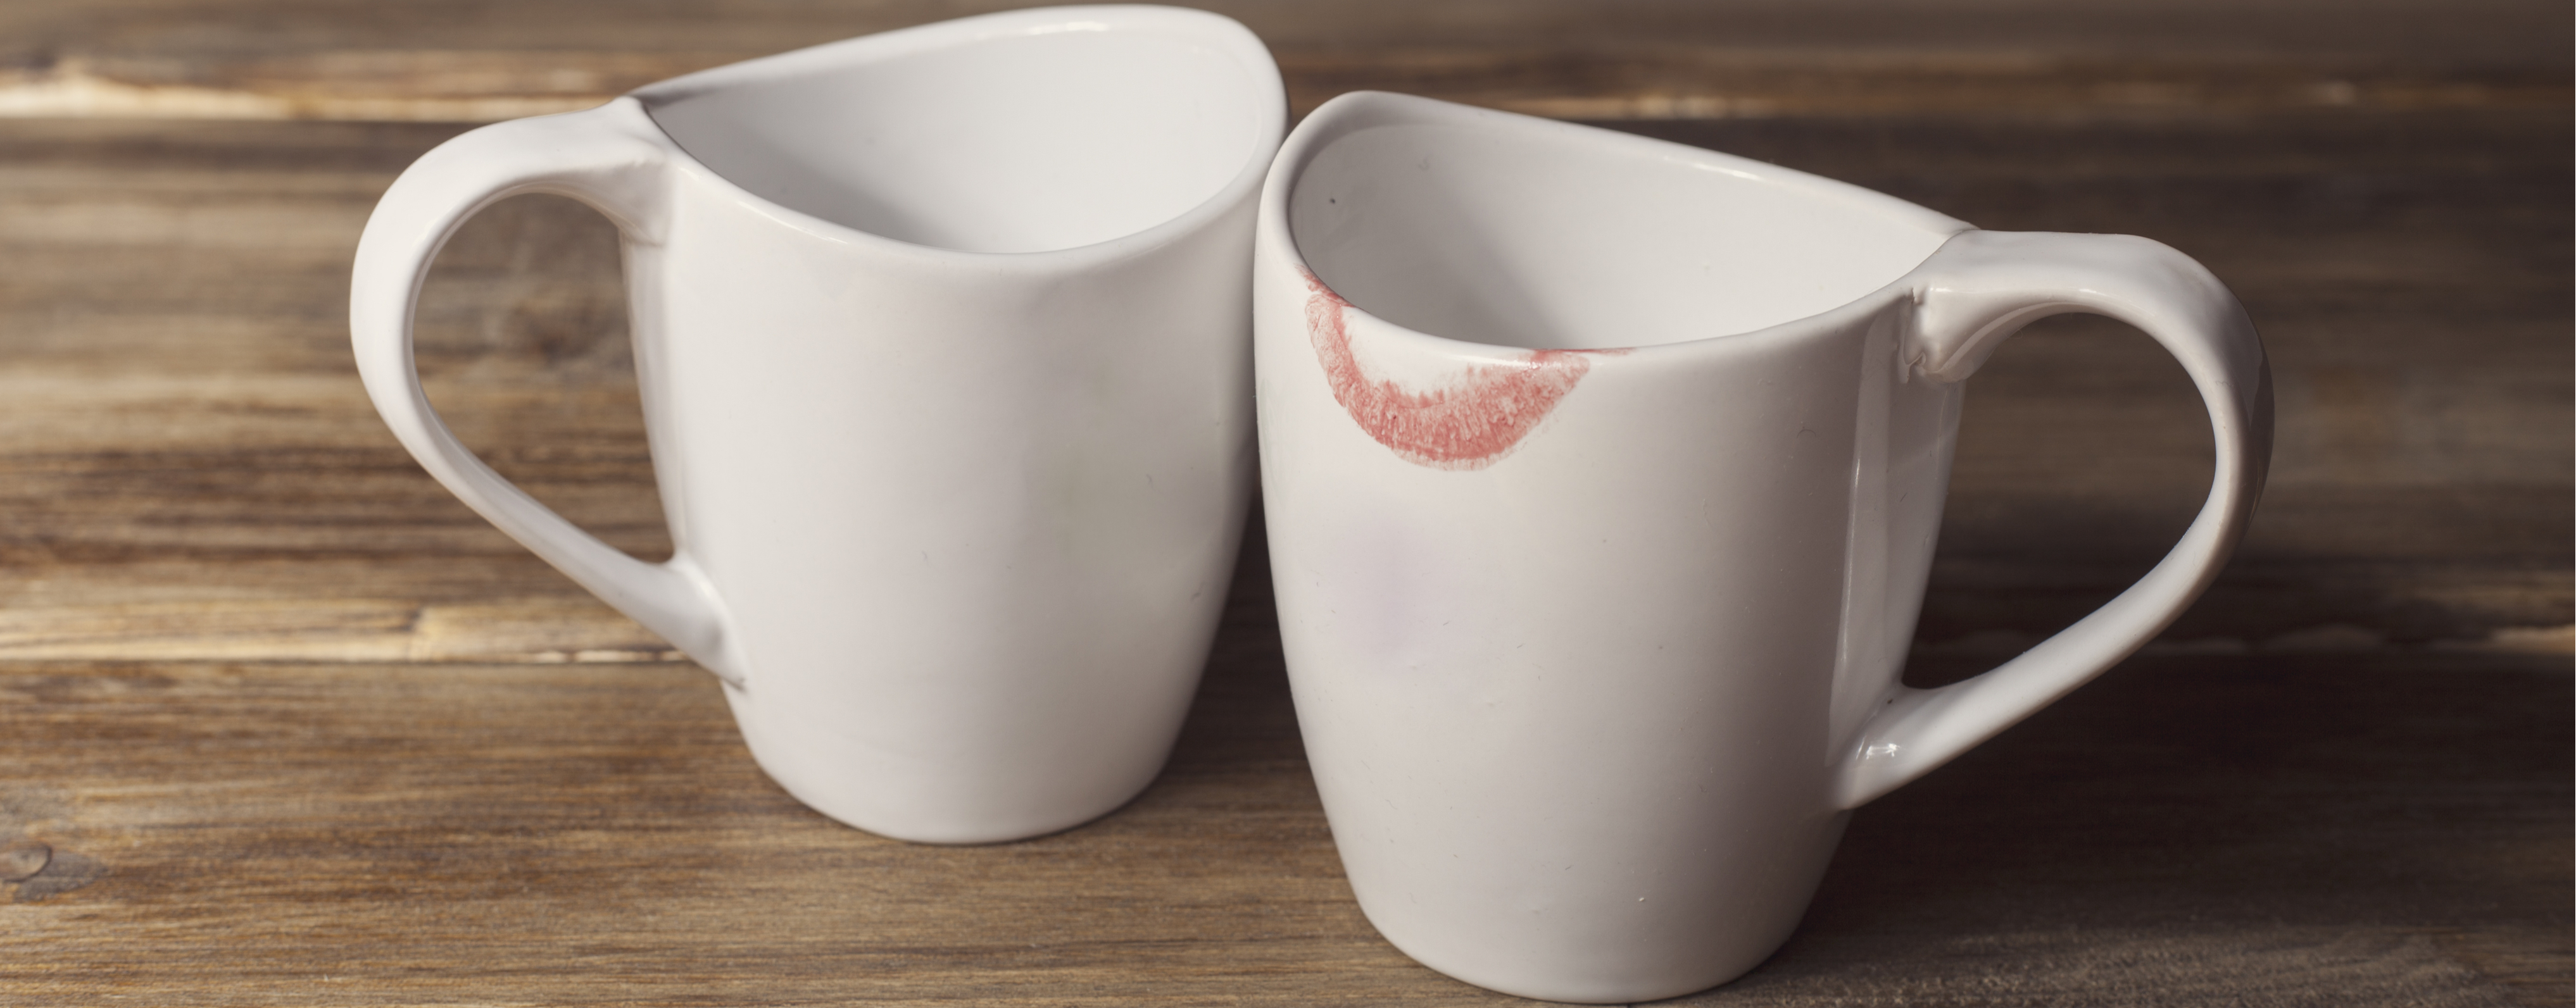 Lipstick on a cup